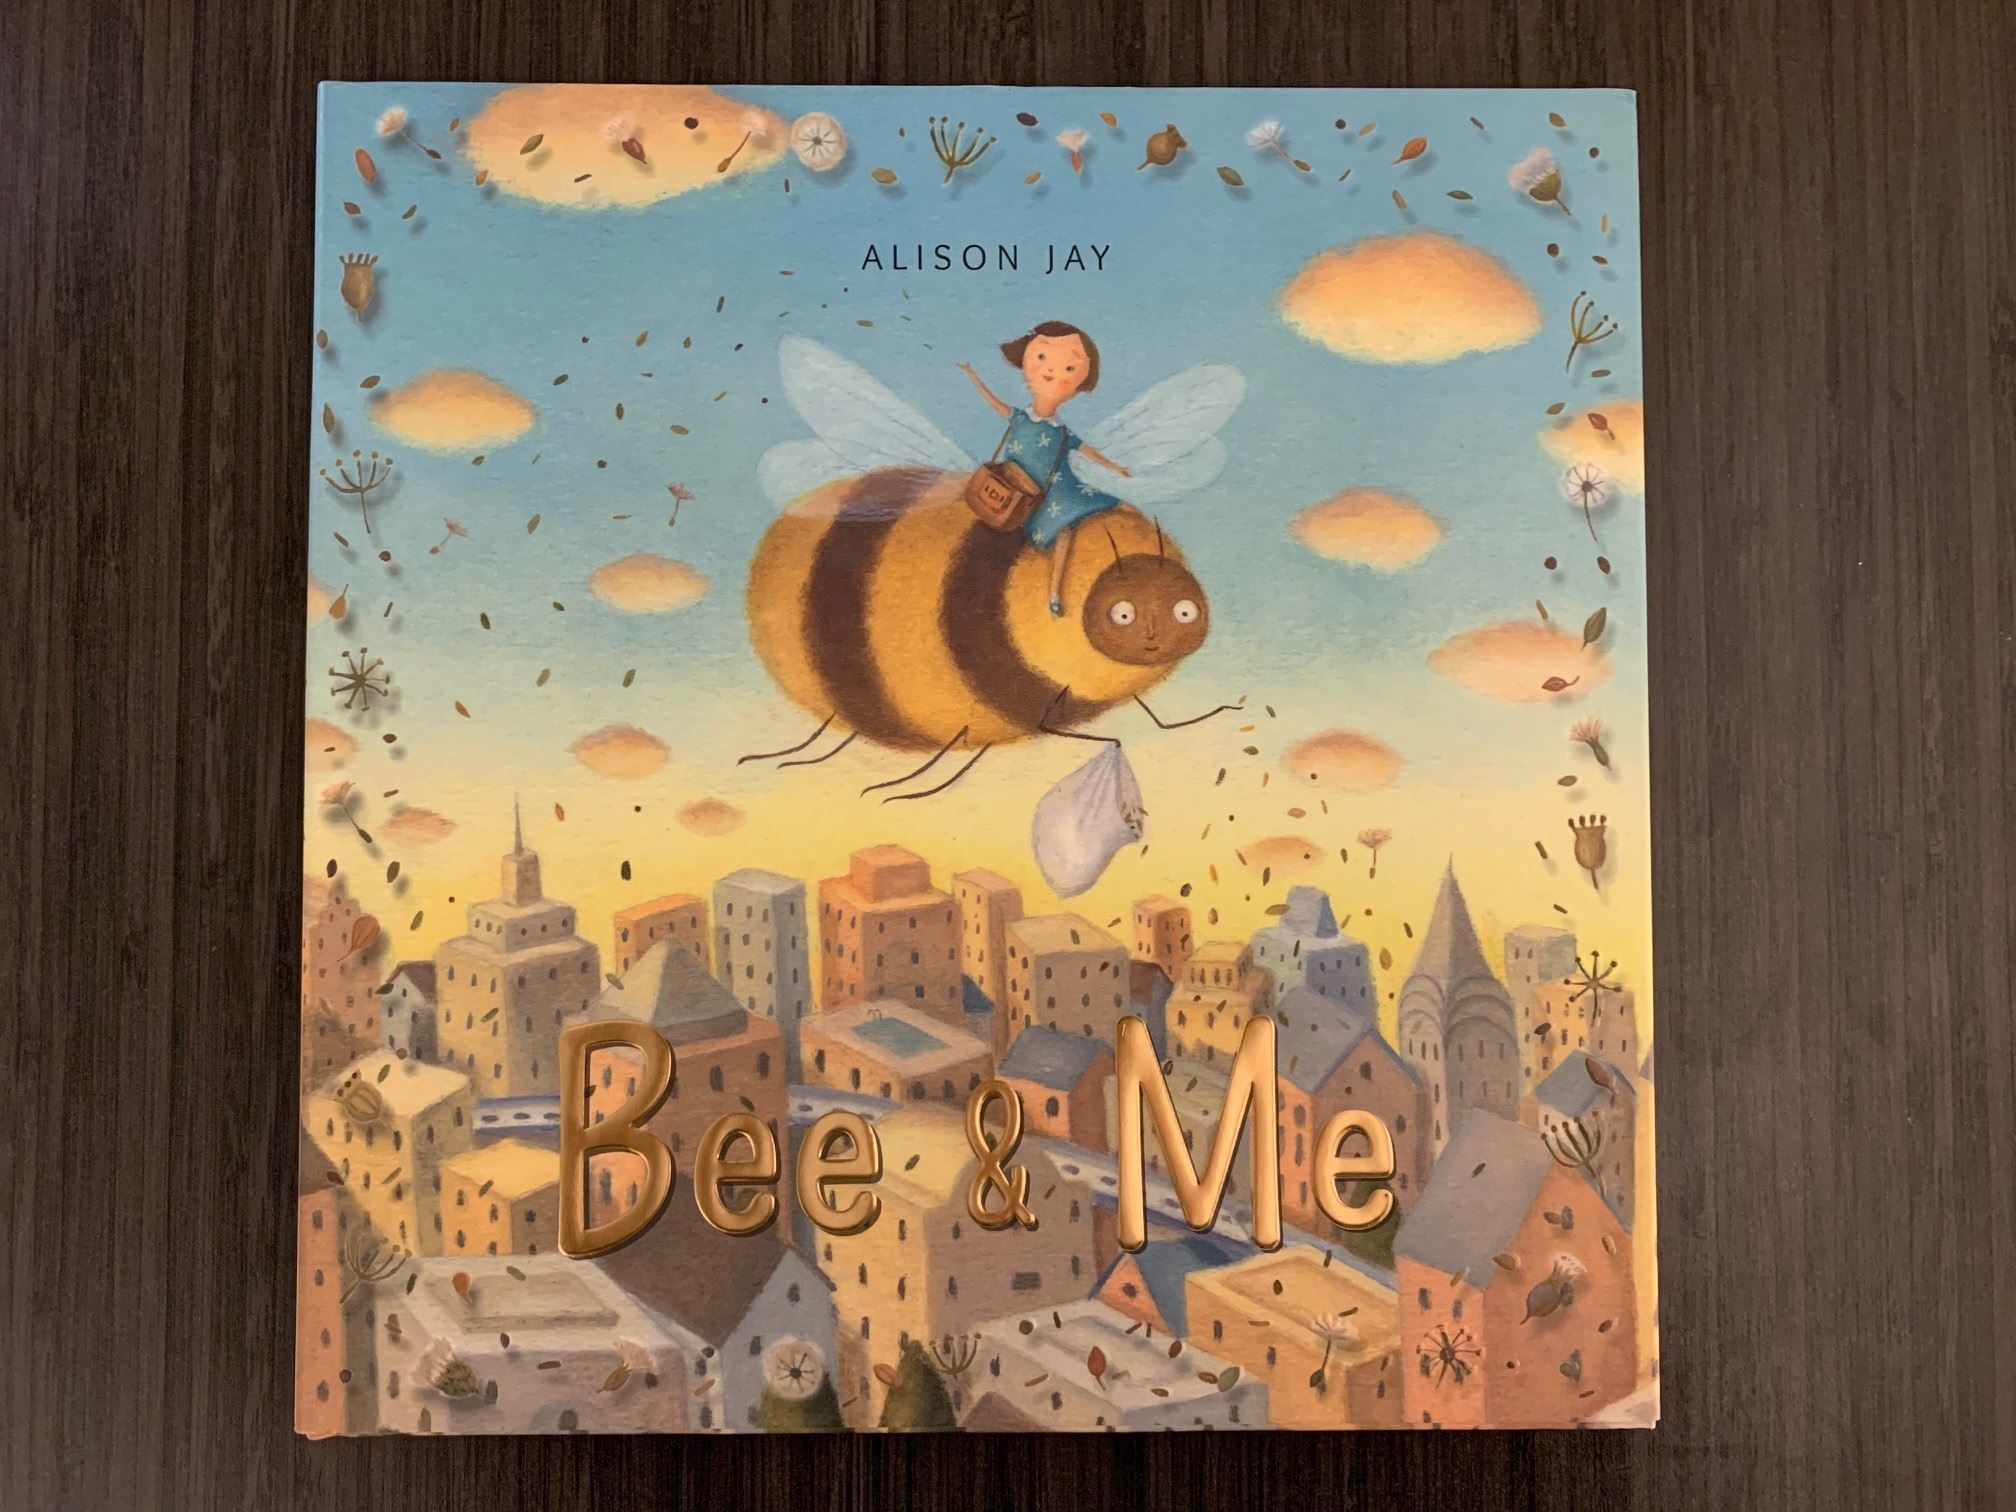 Book 1 - Bee & Me